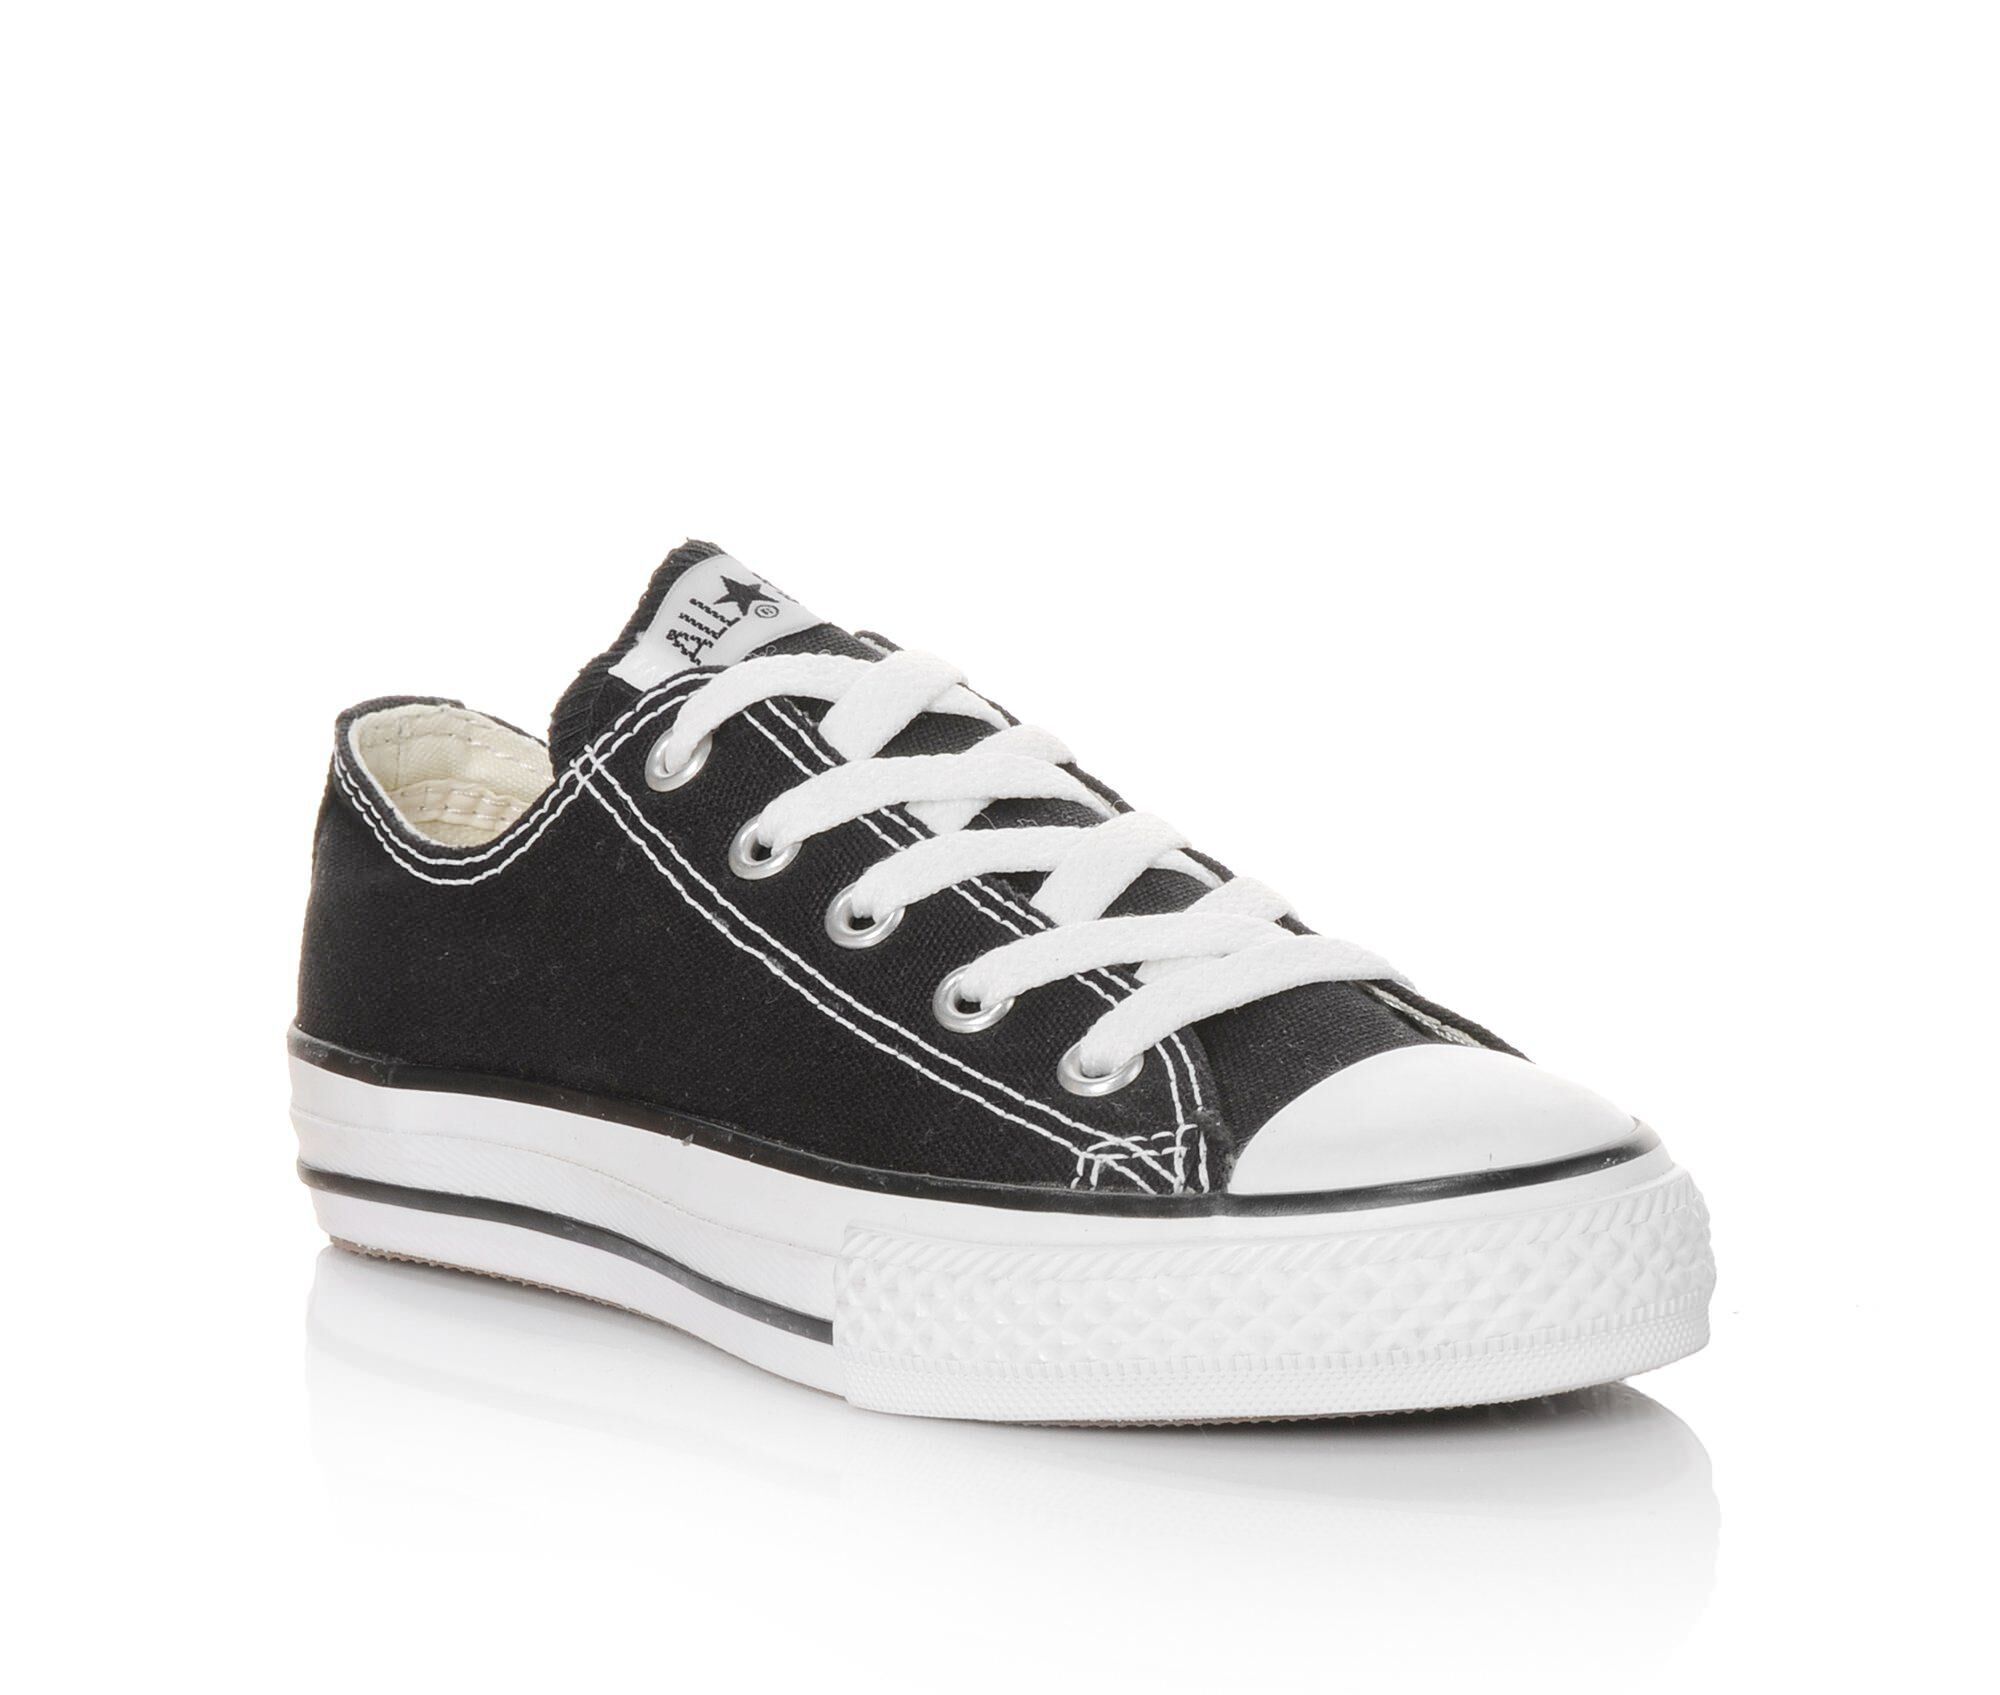 Converse All Star Ox Leather : Converse Shoes For Sale